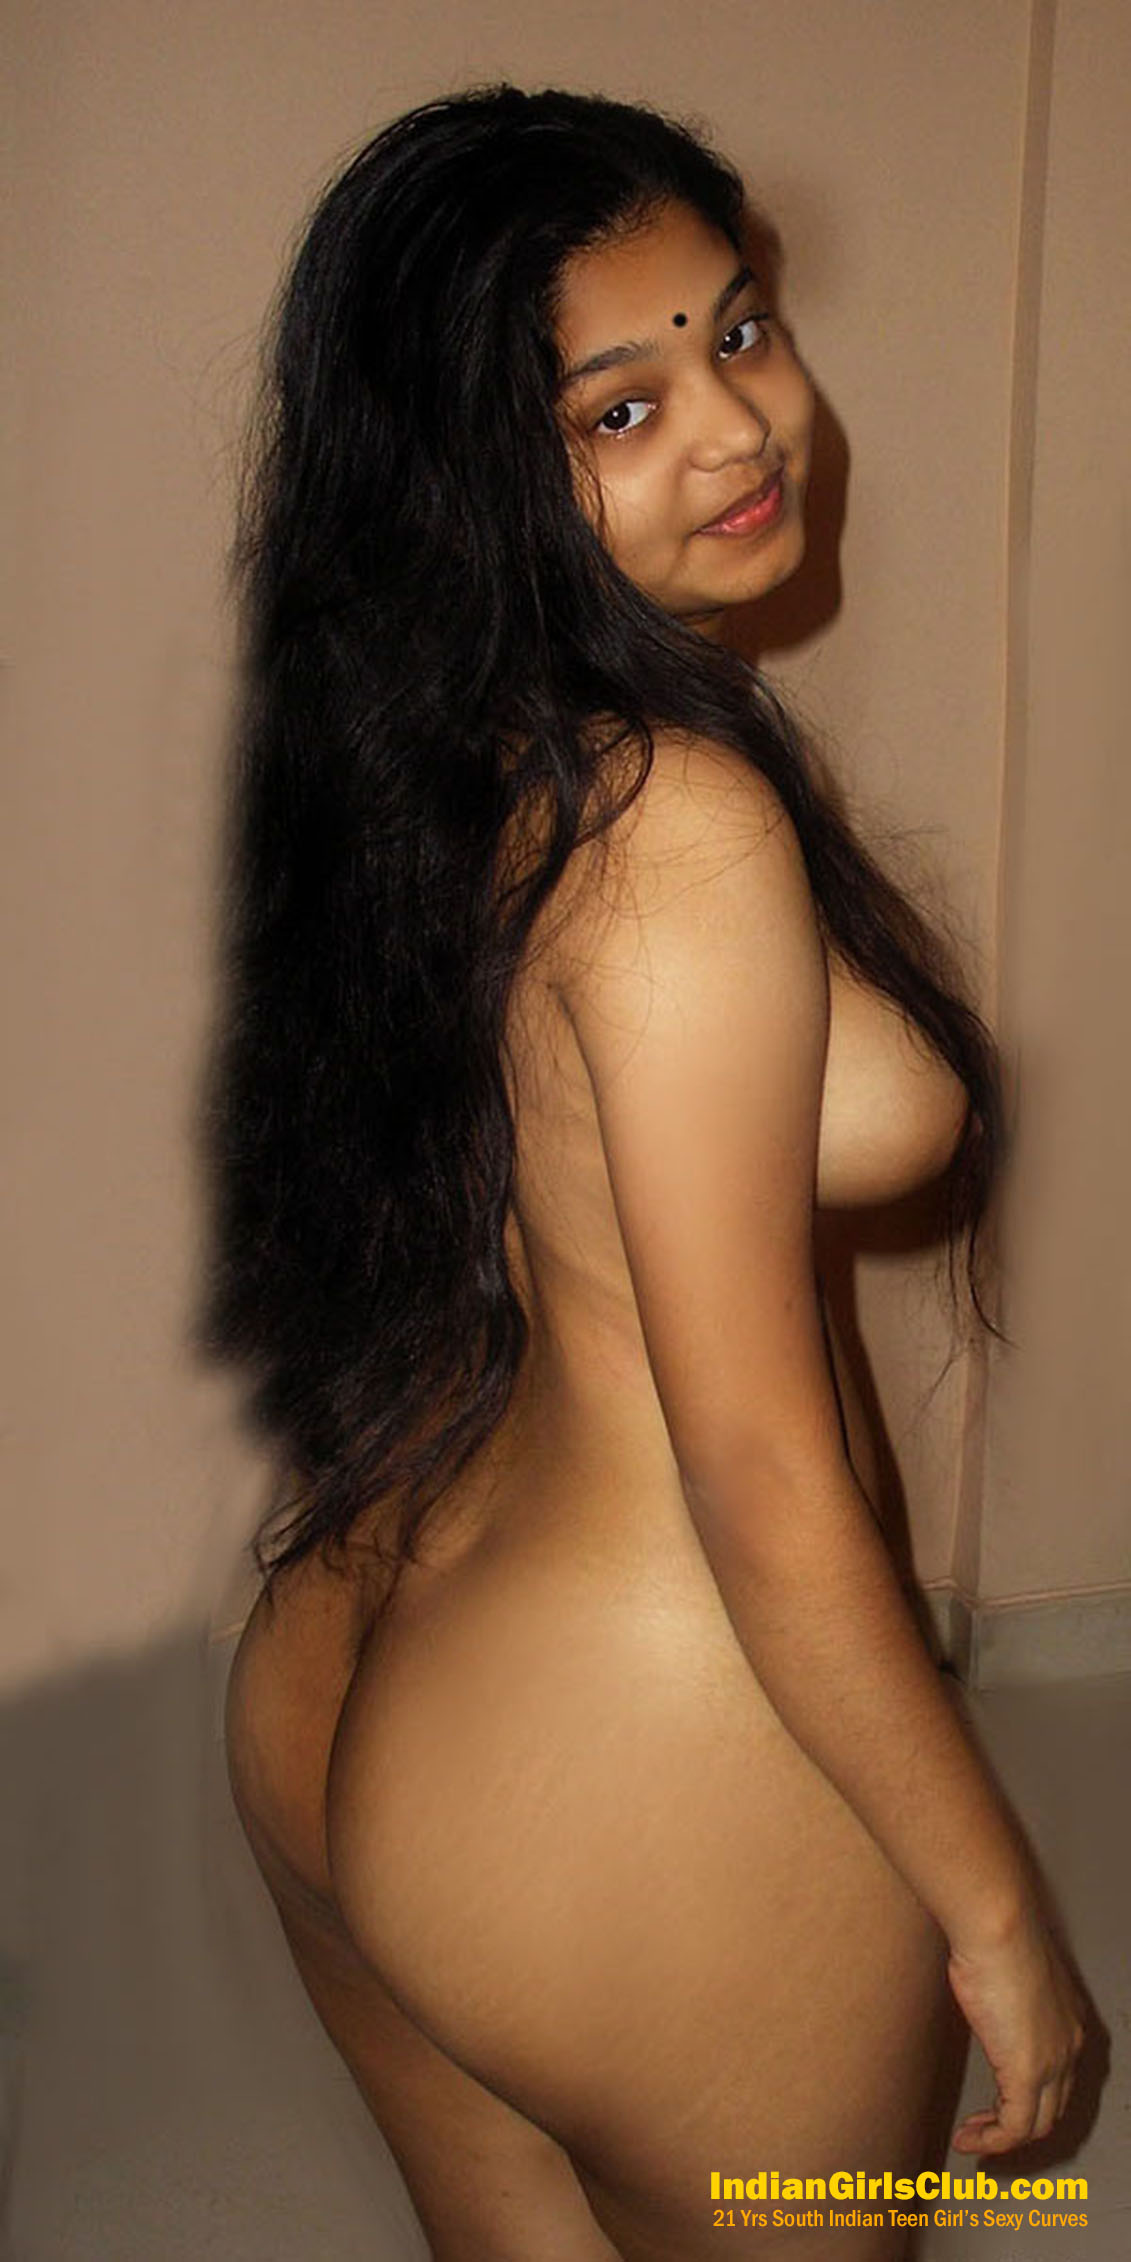 Thank you Nude indian hottest chicks